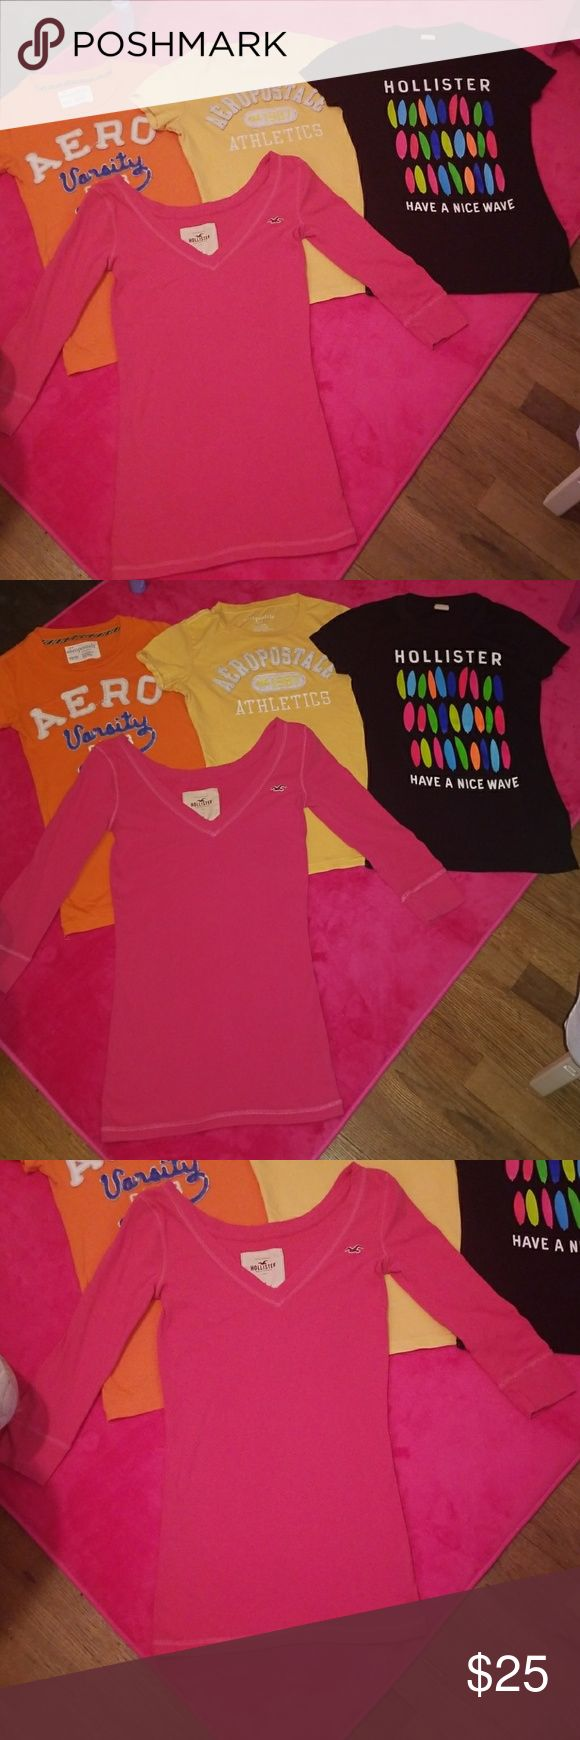 Hollister & Aeropastle Women's Shirt Bundle 2 Aeropastle Short Sleeved Tee Shirts  1 Hollister Short Sleeved Tee Shirt  1 Hollister Quarter Sleeved V-neck Tee Shirt   All 4 Tops Fit a Women's Size Small  All are in excellent condition Hollister Tops Tees - Short Sleeve